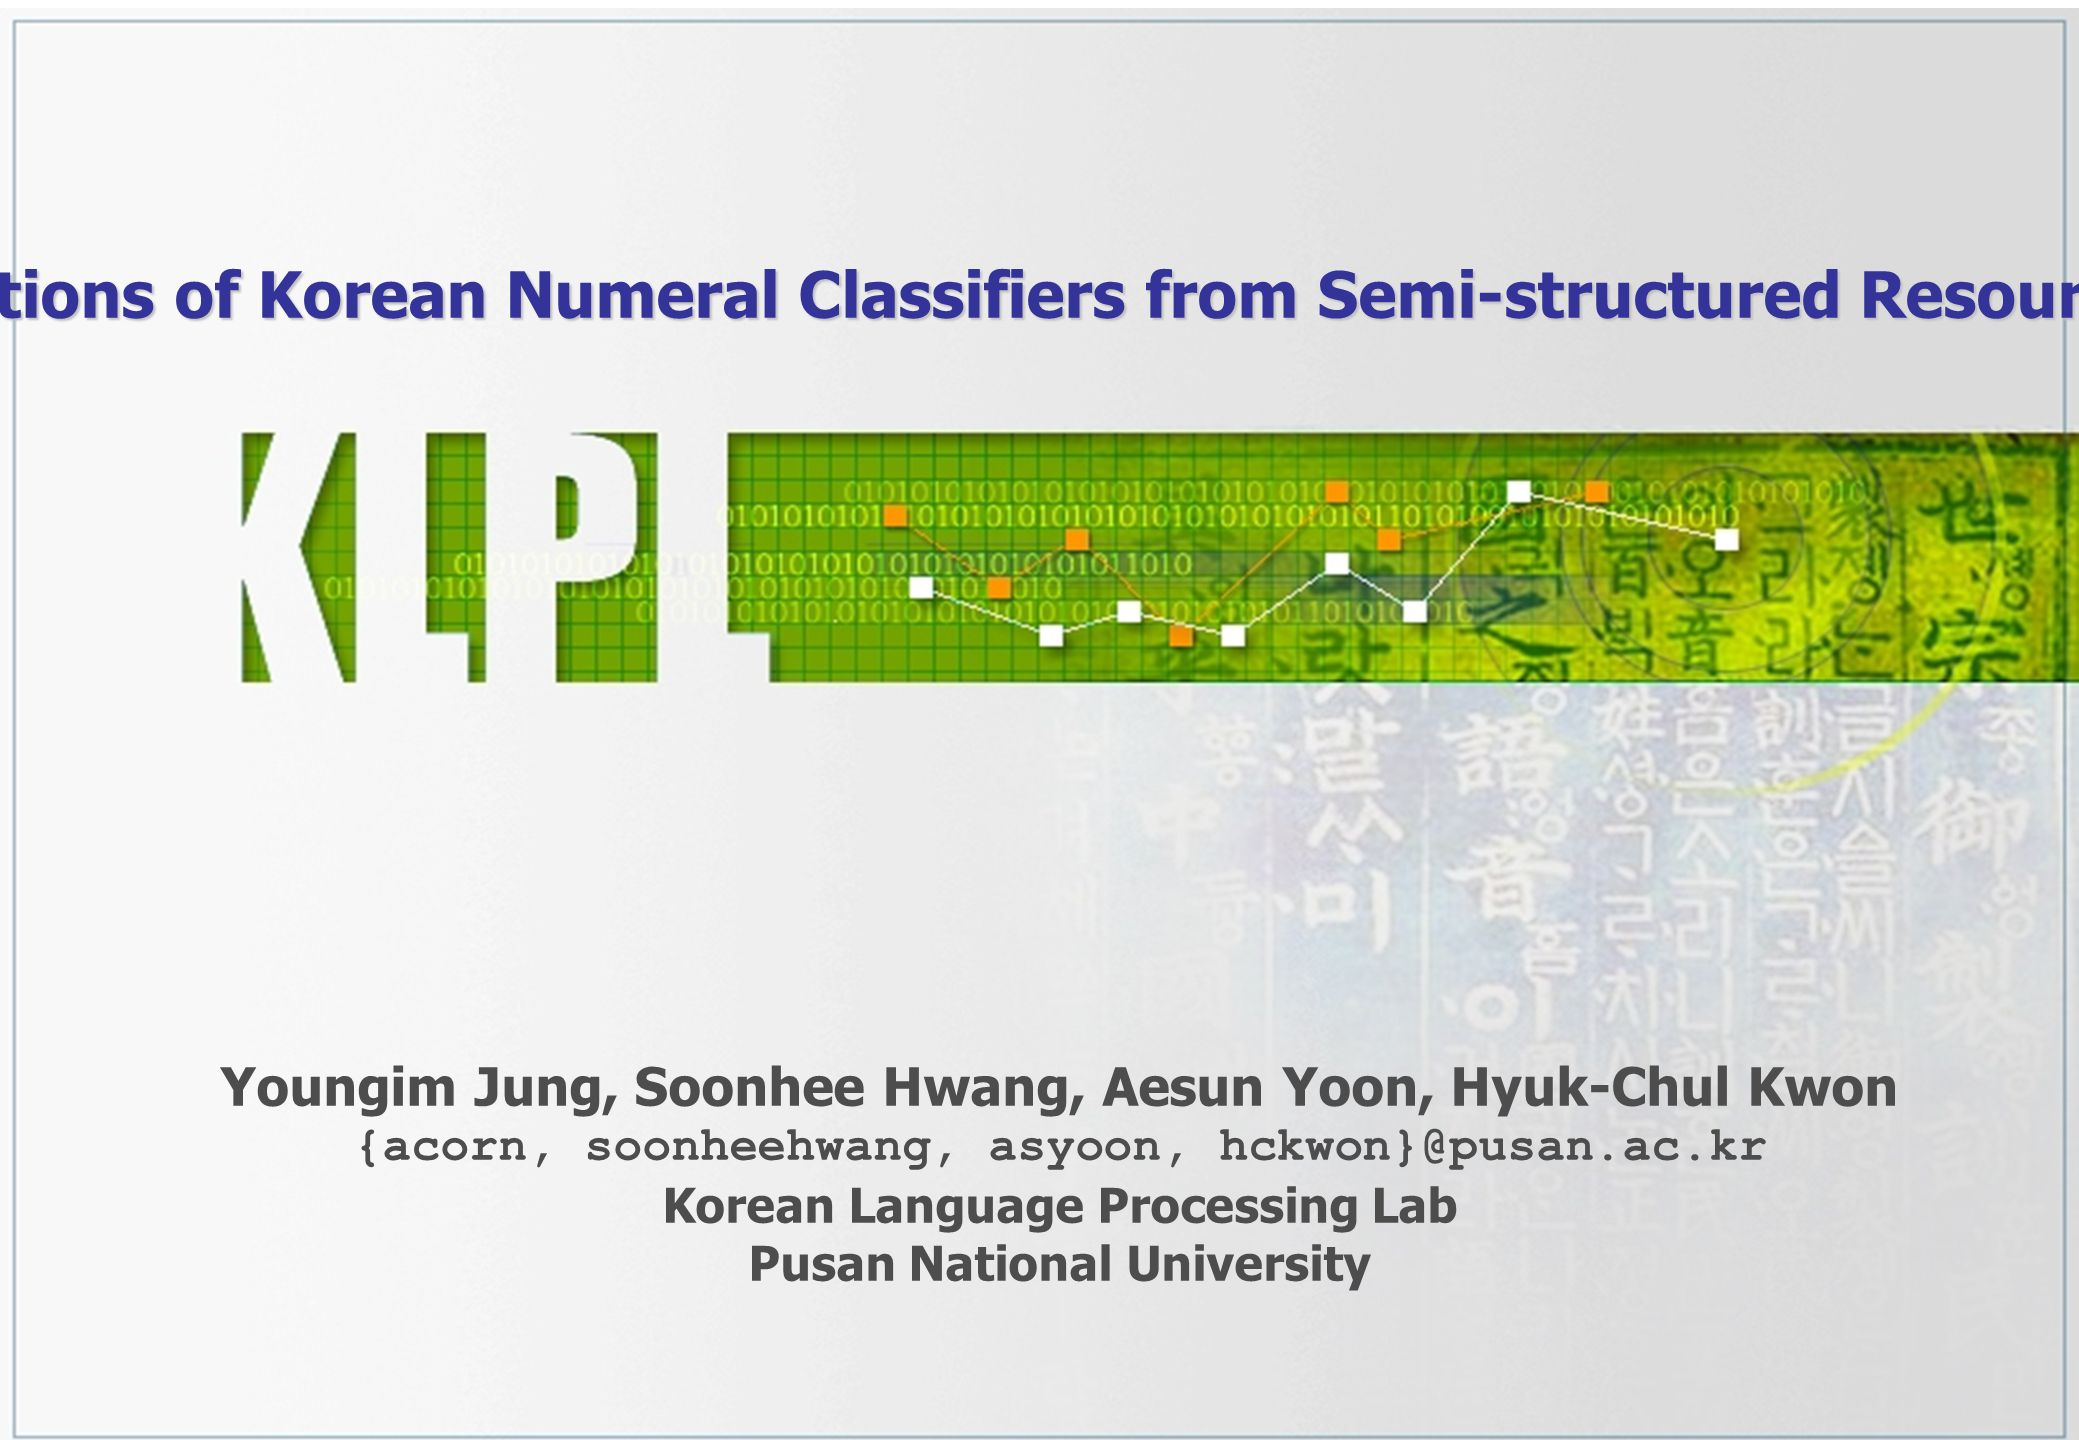 Extracting Ontological Relations of Korean Numeral Classifiers from Semi-structured Resources Using NLP techniques Youngim Jung, Soonhee Hwang, Aesun